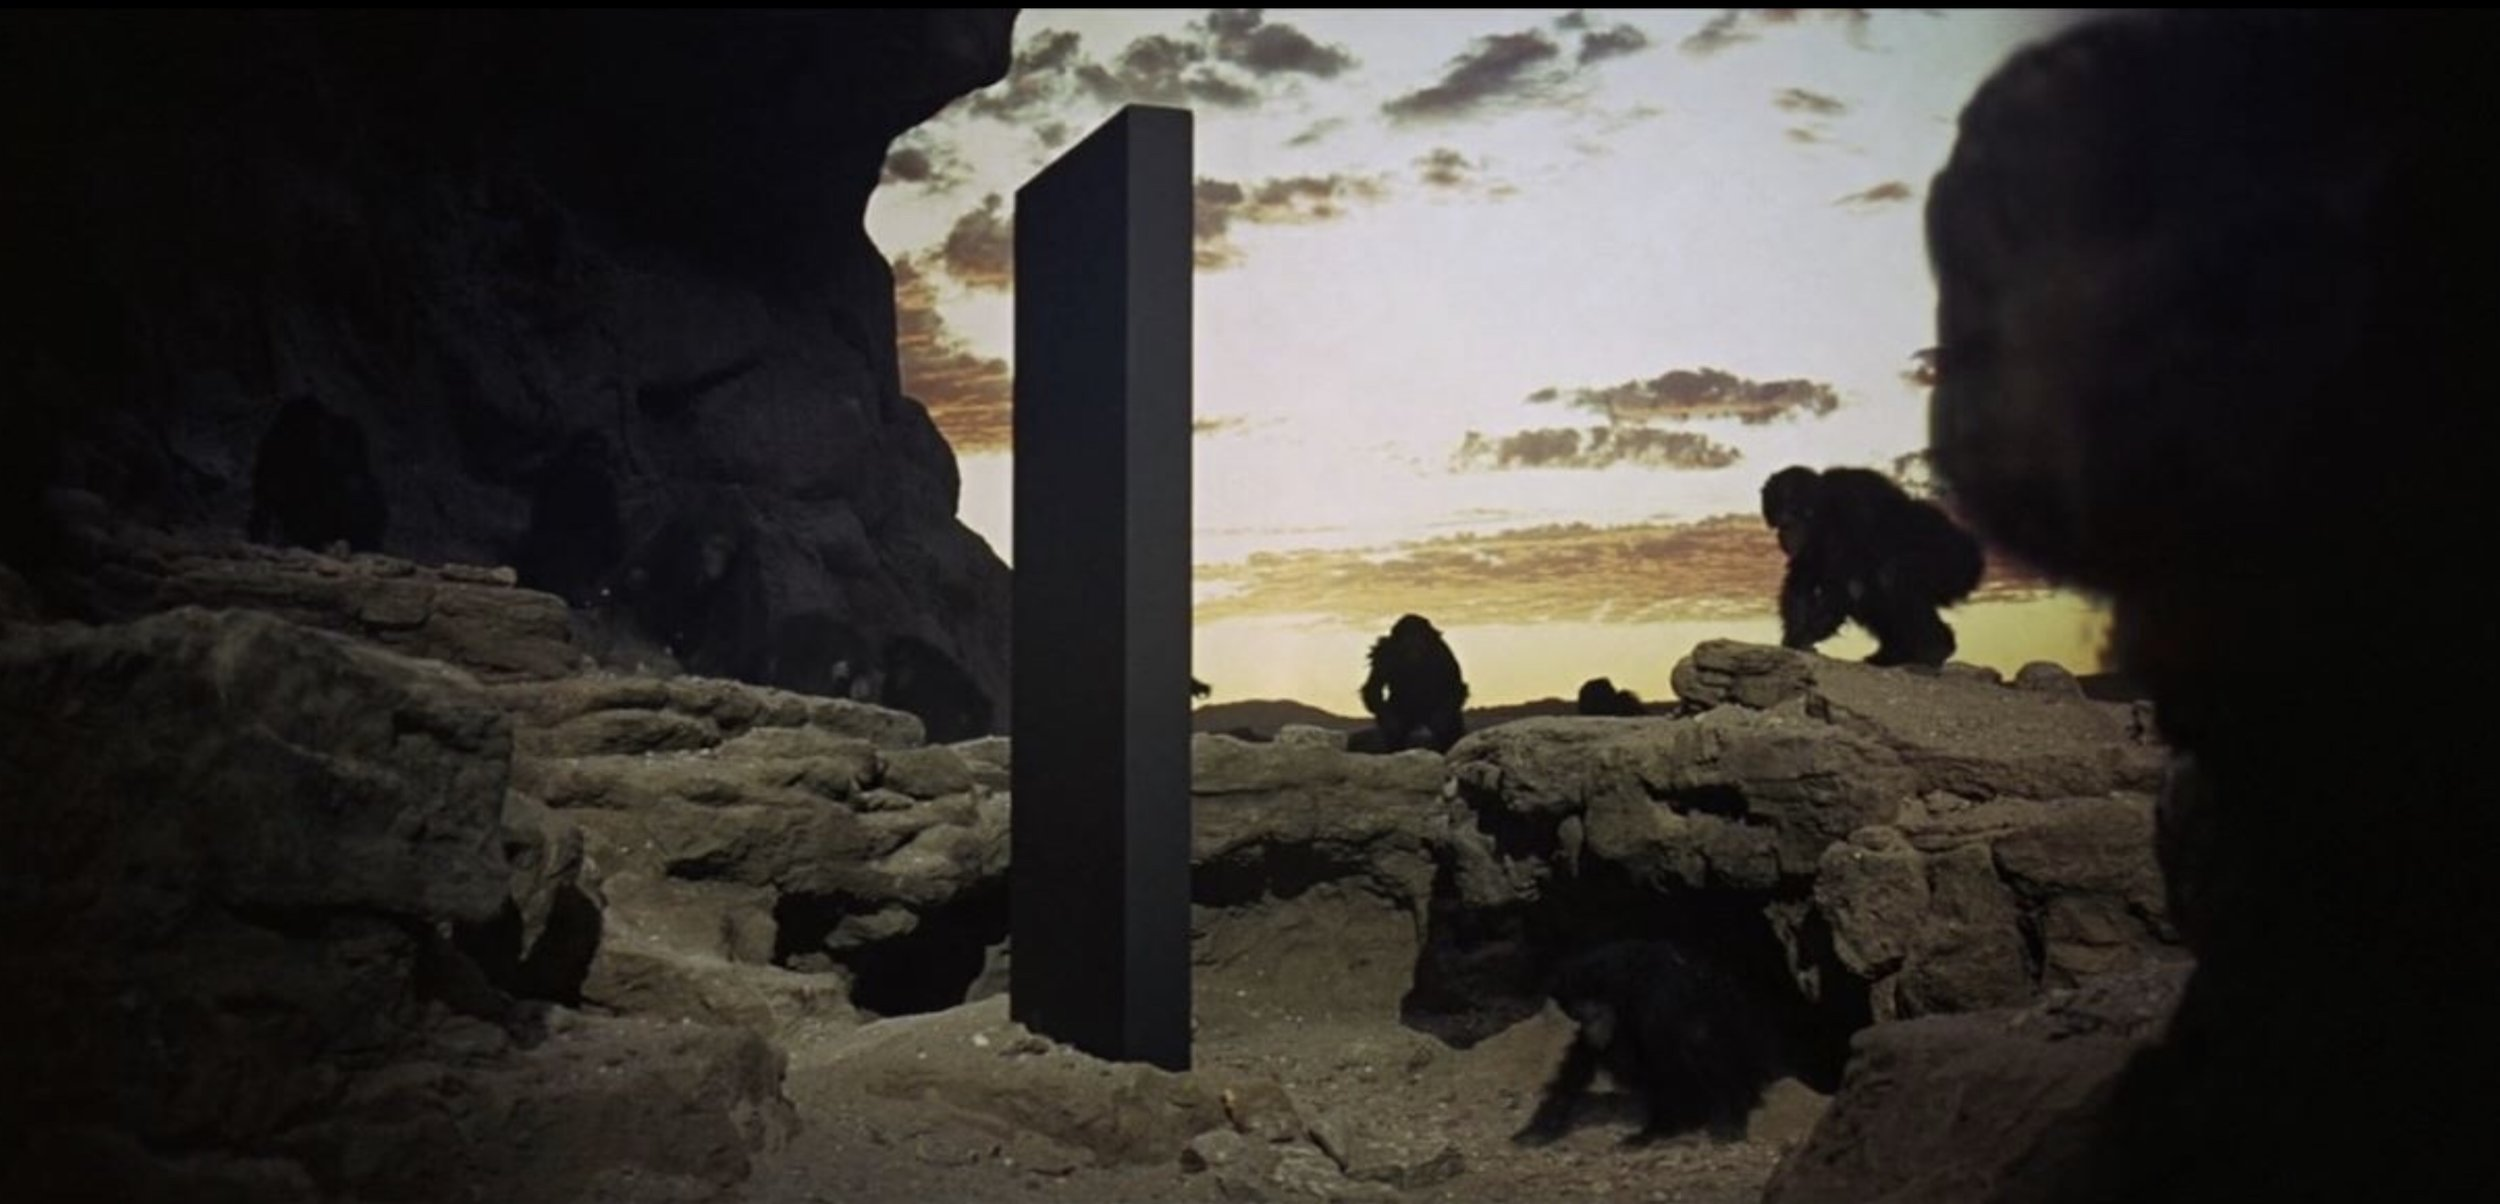 2001: A Space Odyssey (1968) MGM / Stanley Kubrick Productions